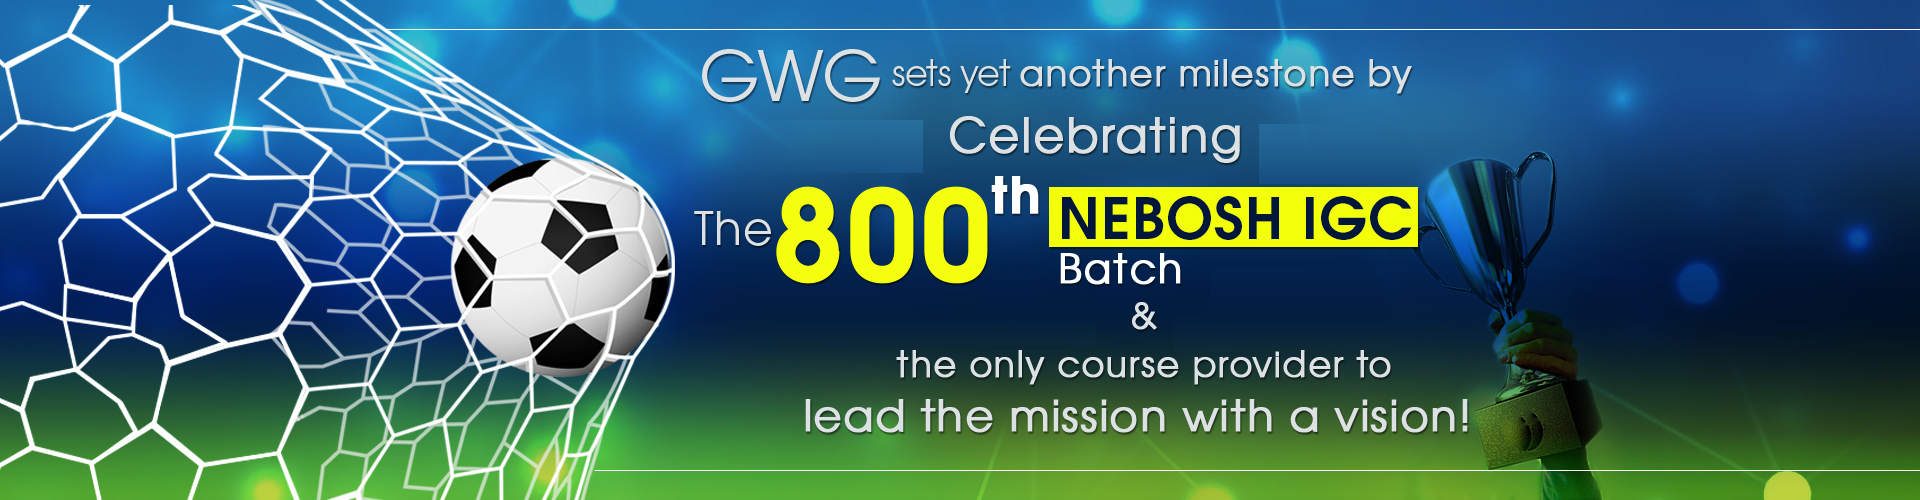 NEBOSH-IGC_800th_Batch_Celebration_banner_coin